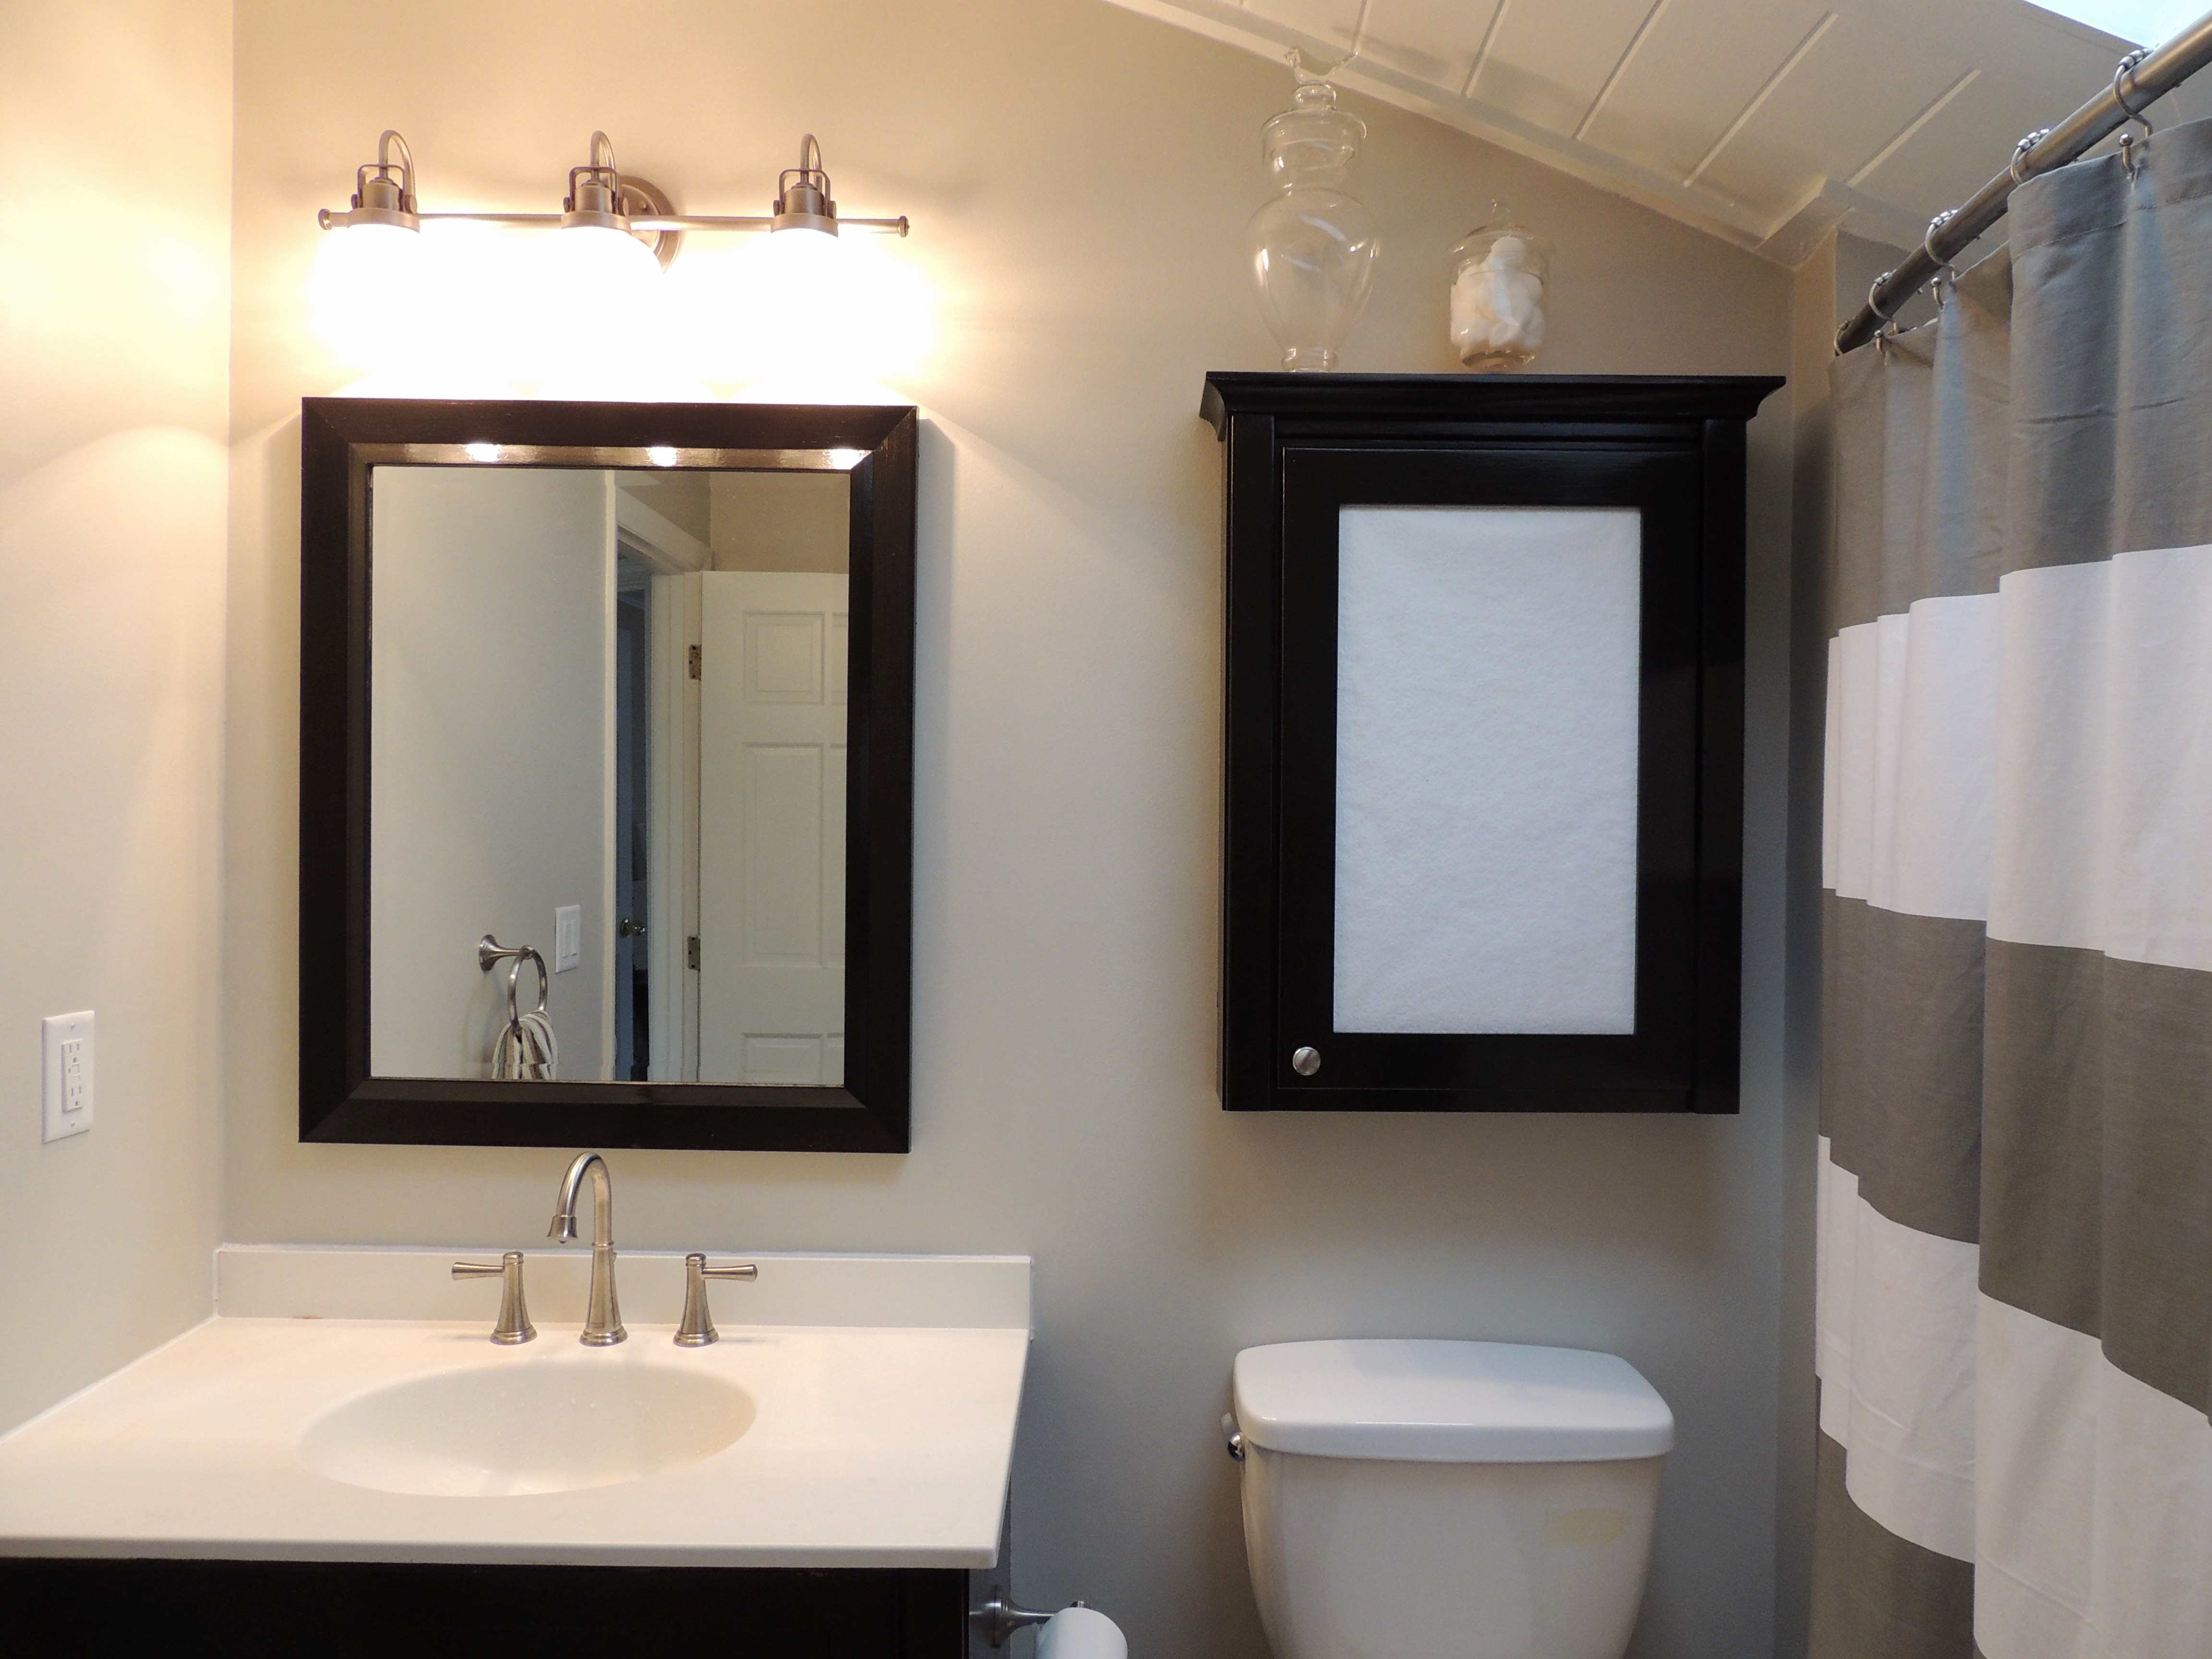 Merveilleux Stunning Lowes Bathroom Vanity Mirrors Photo U2013 When Exploring Numerous  Outside A Few Ideas, It Is Essential To Keep In Mind You Can Find Different  Stages ...